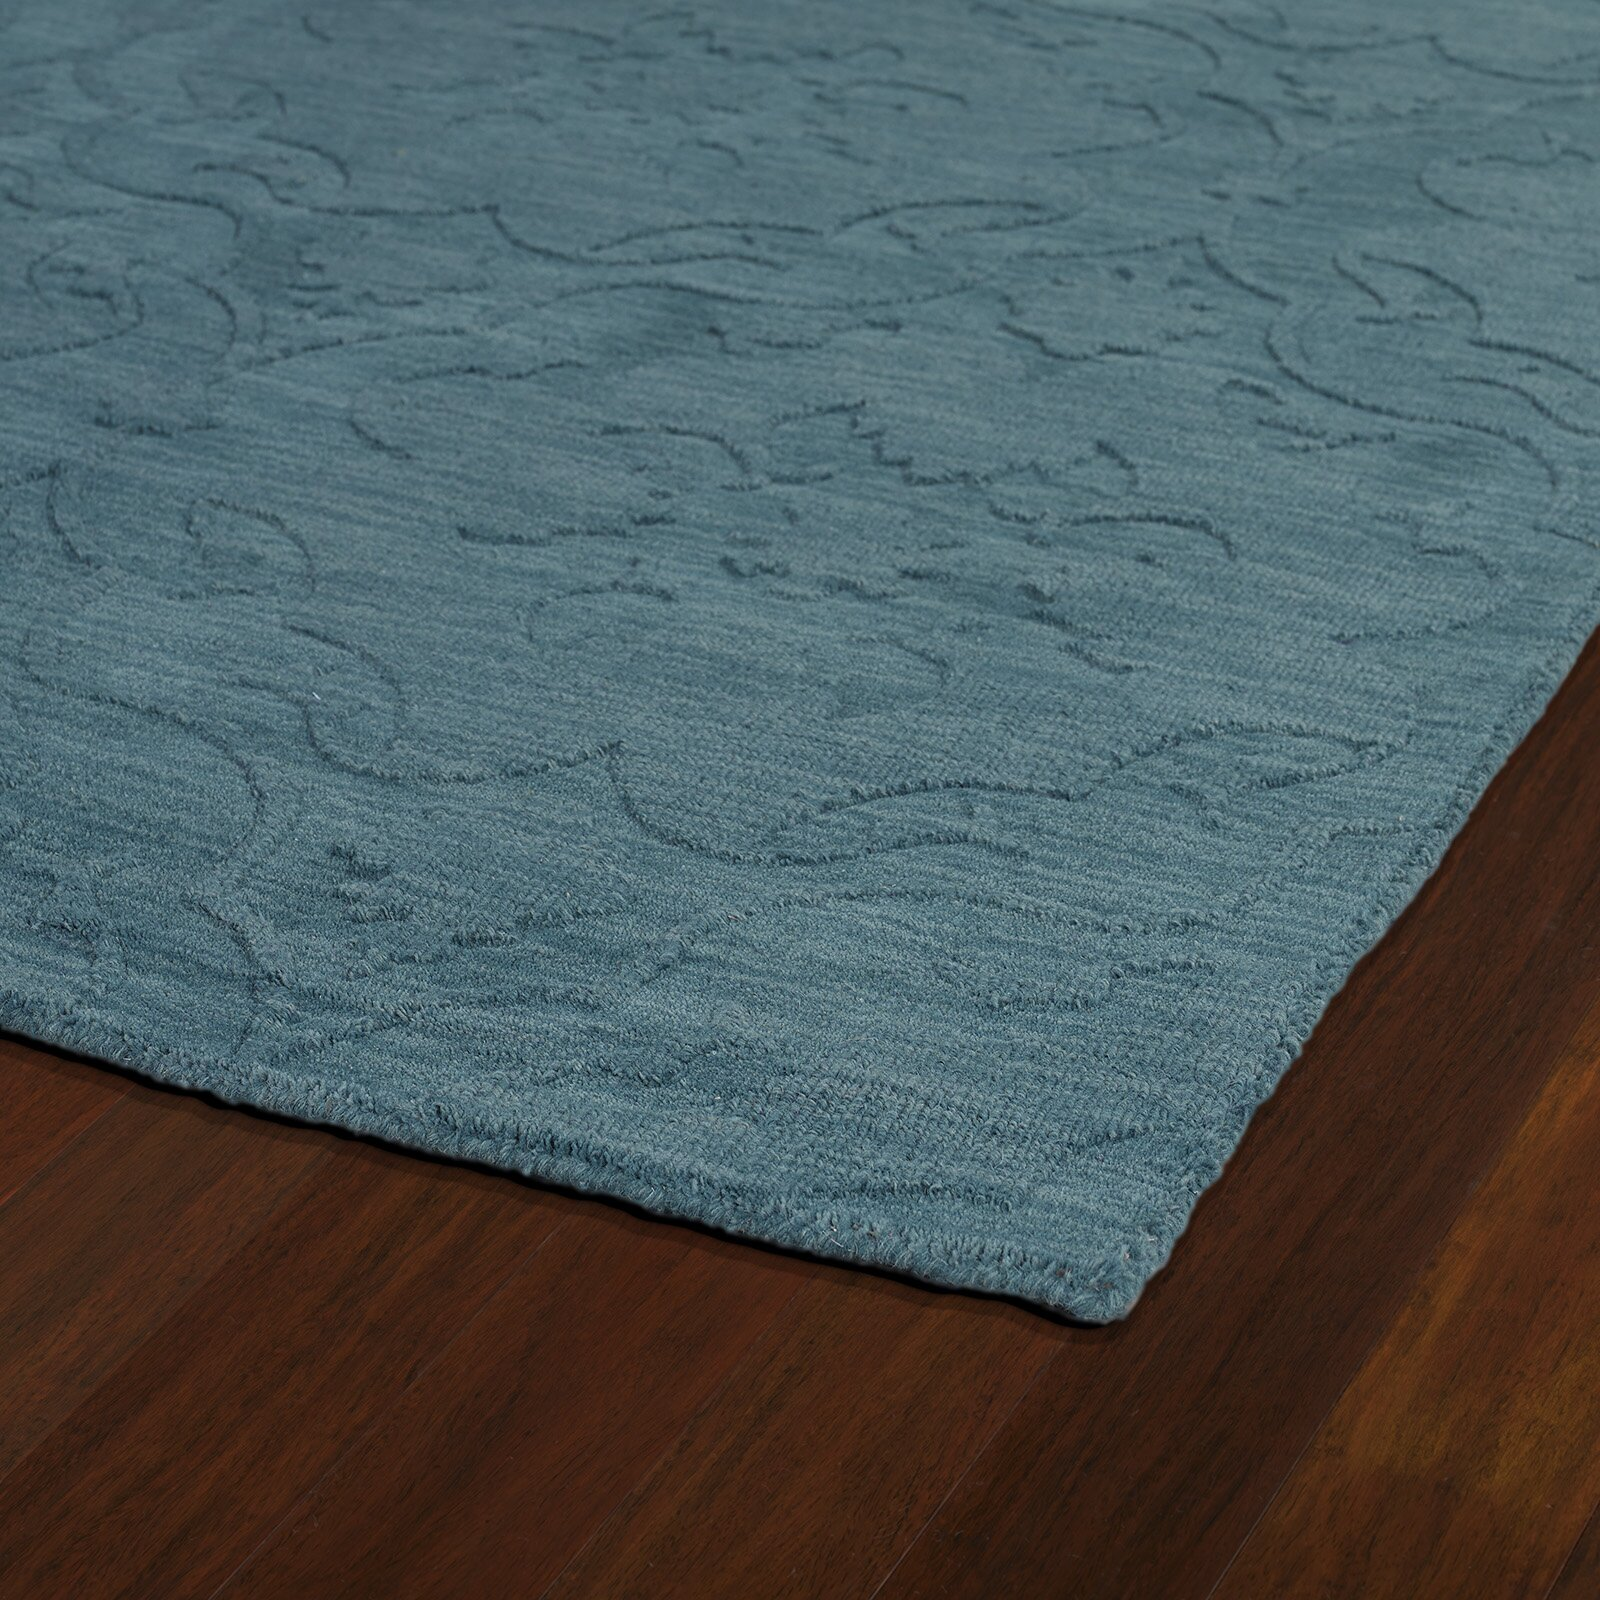 Kaleen Helena Turquoise Area Rug Reviews: Kaleen Imprints Classic Turquoise Solid Aera Rug & Reviews